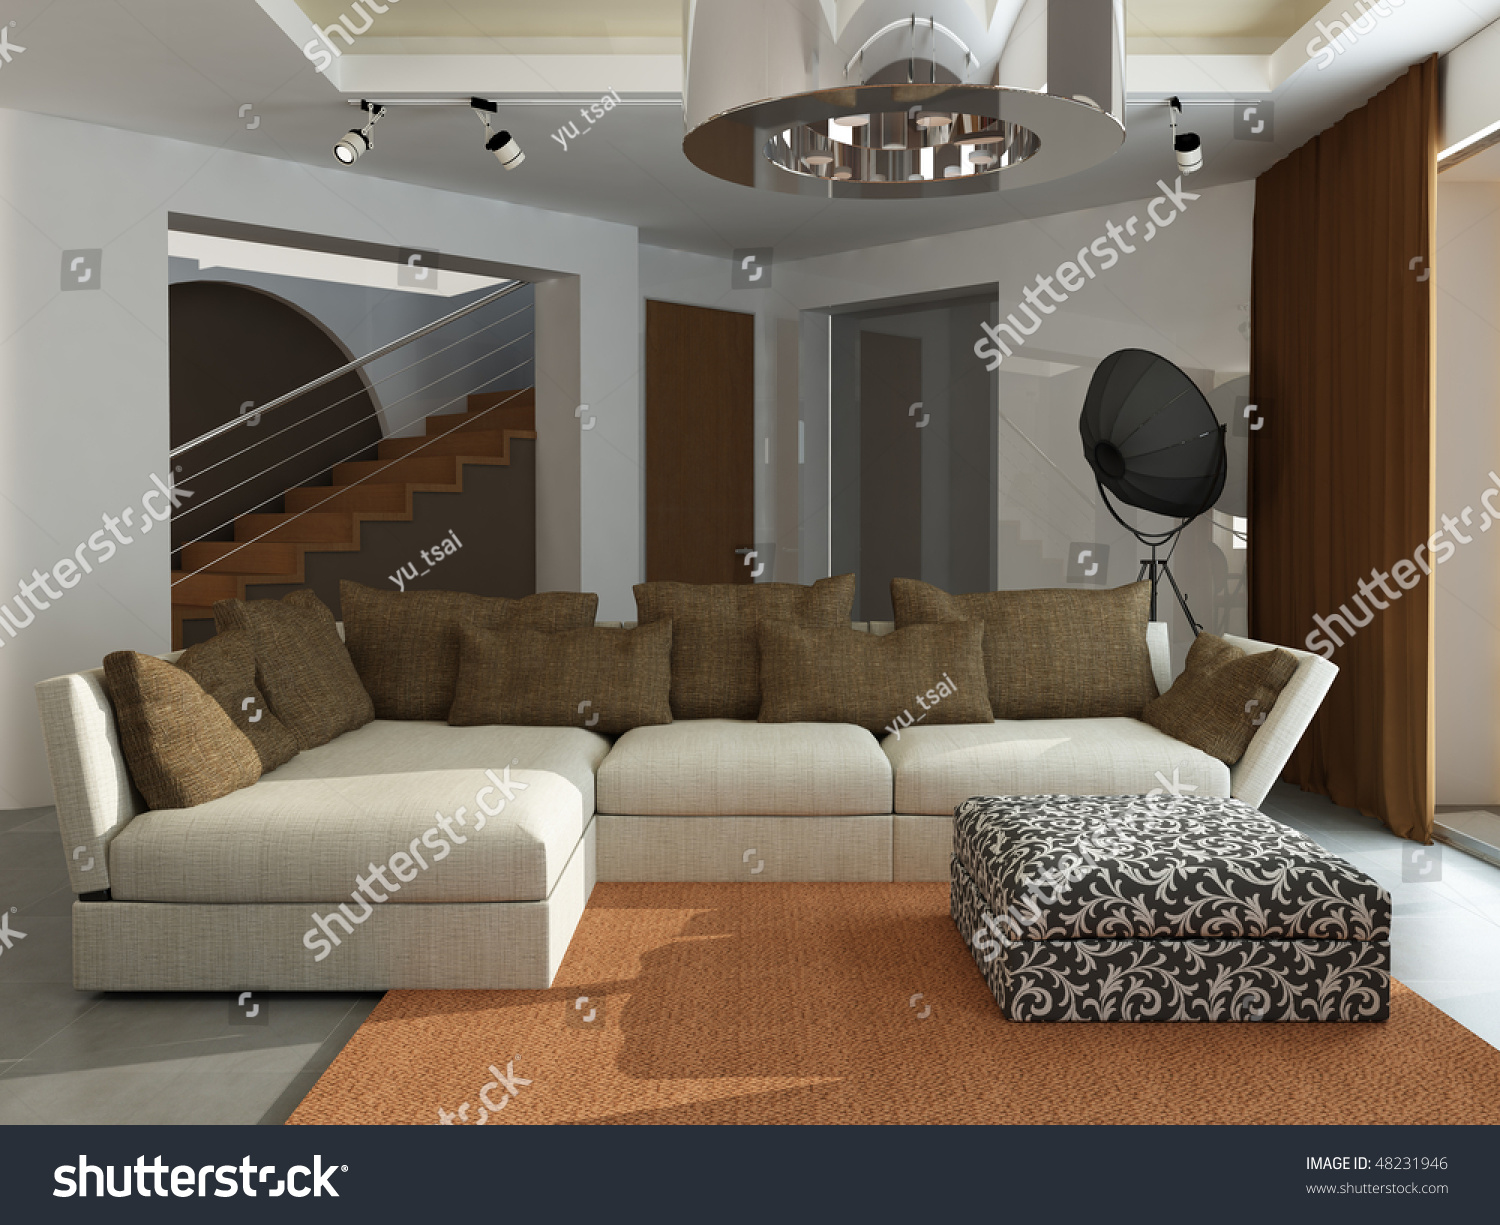 Interior modern drawingroom 3d rendering 5000x3750 stock for 3d bedroom drawing